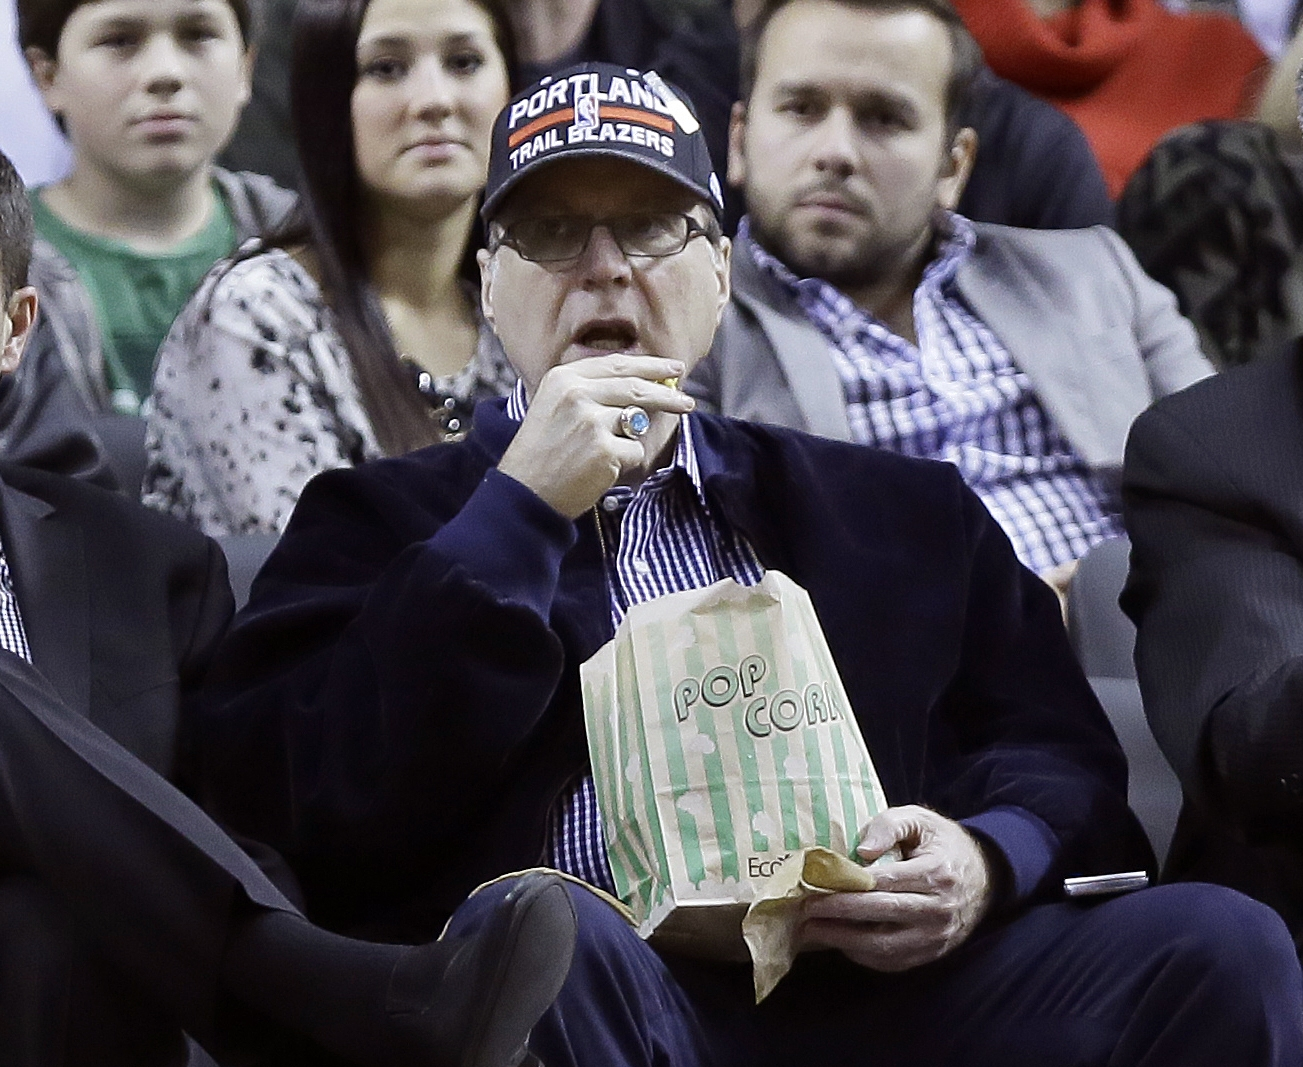 Owner Allen gushes about Seahawks, Trail Blazers